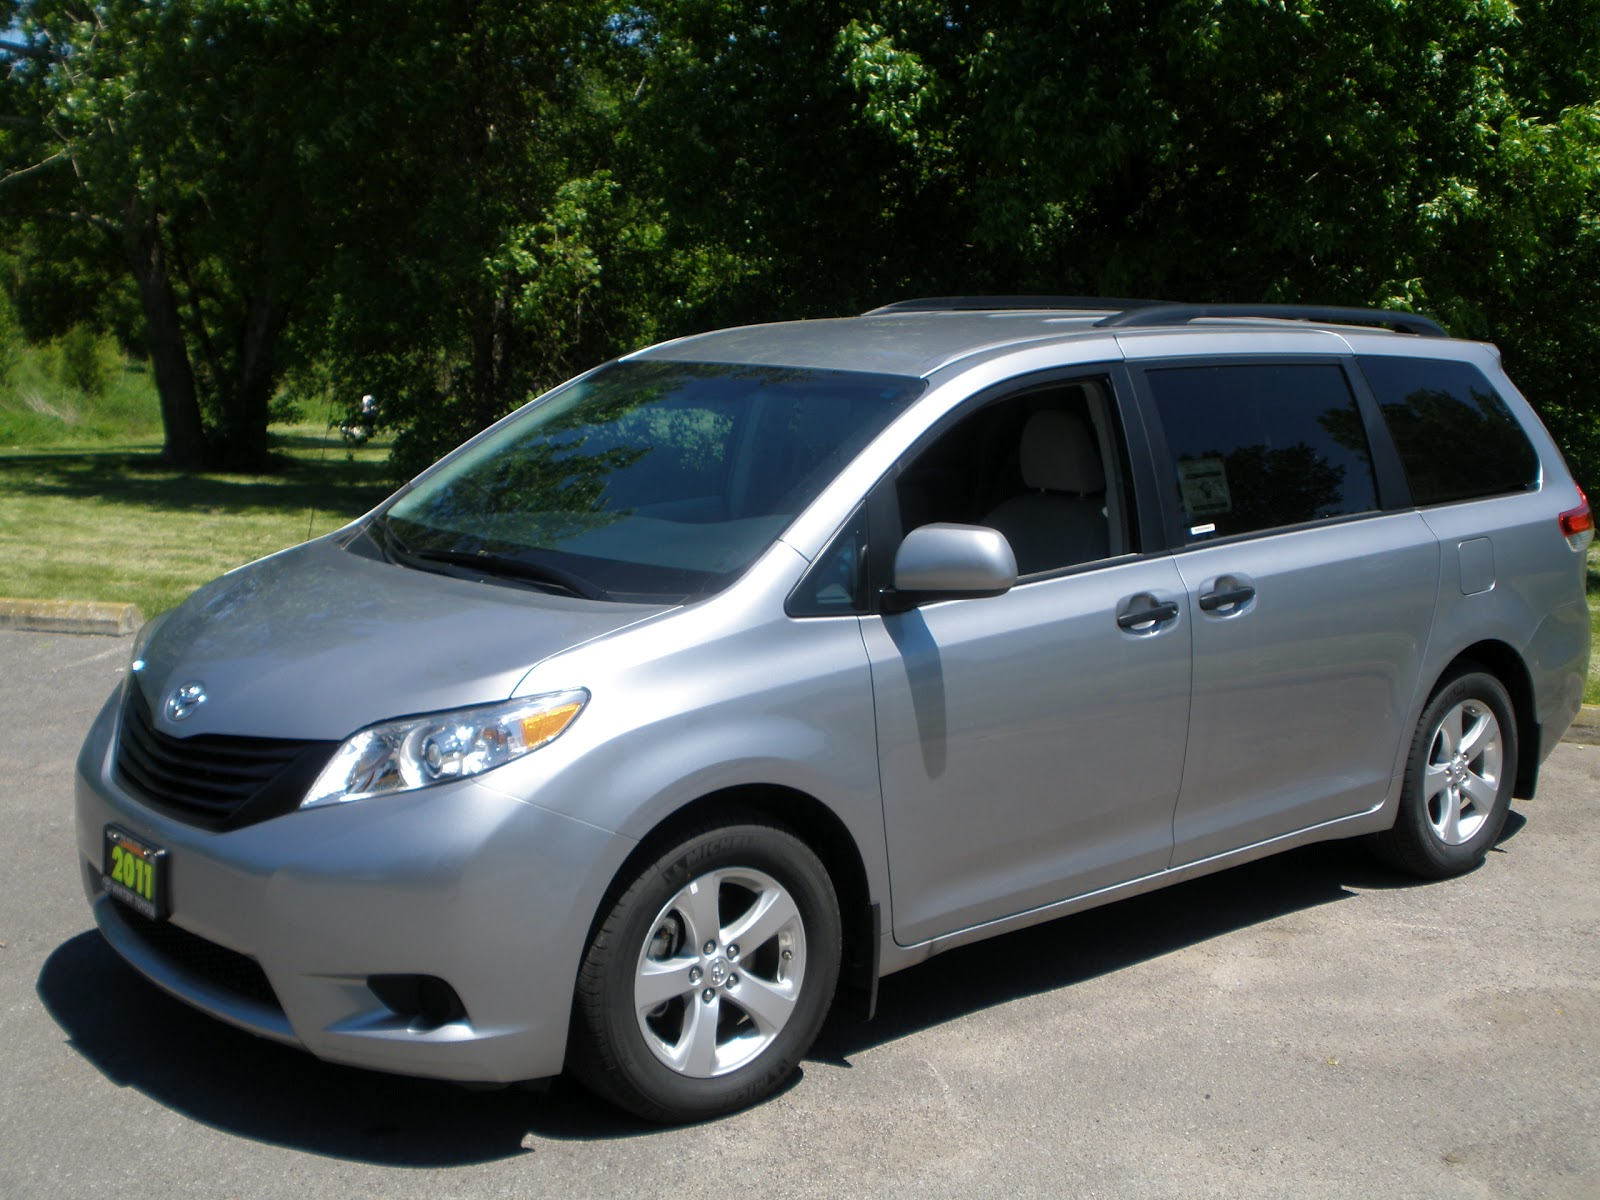 brad 39 s auto reviews review of the 2011 toyota sienna. Black Bedroom Furniture Sets. Home Design Ideas